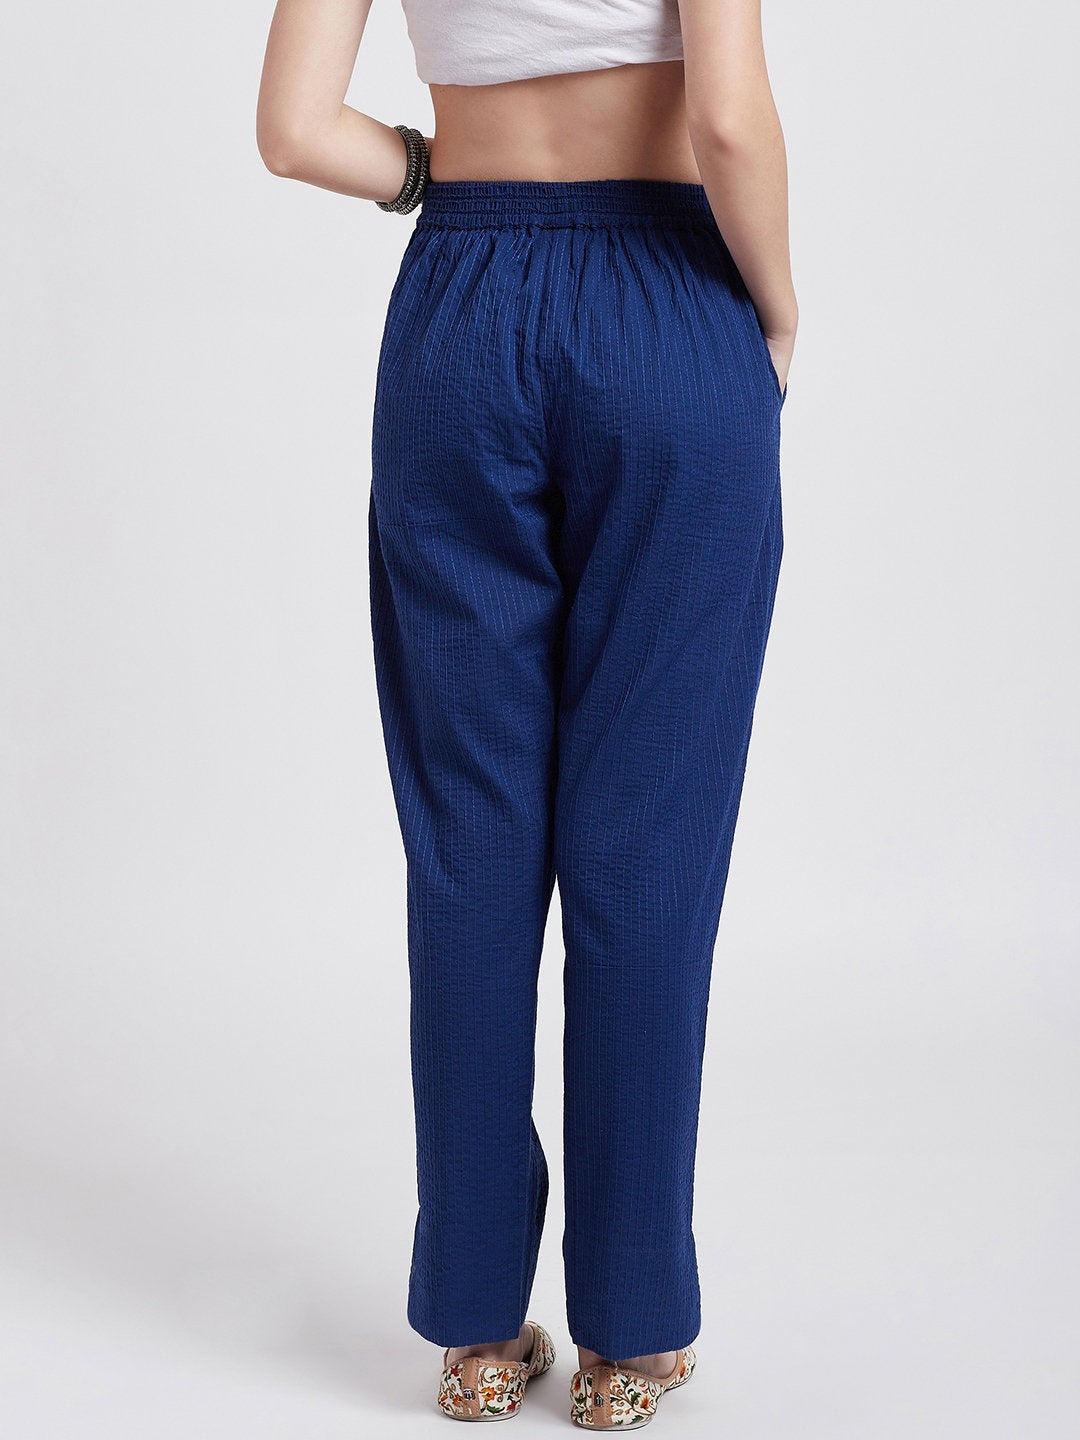 Self embroided cotton blue straight pants